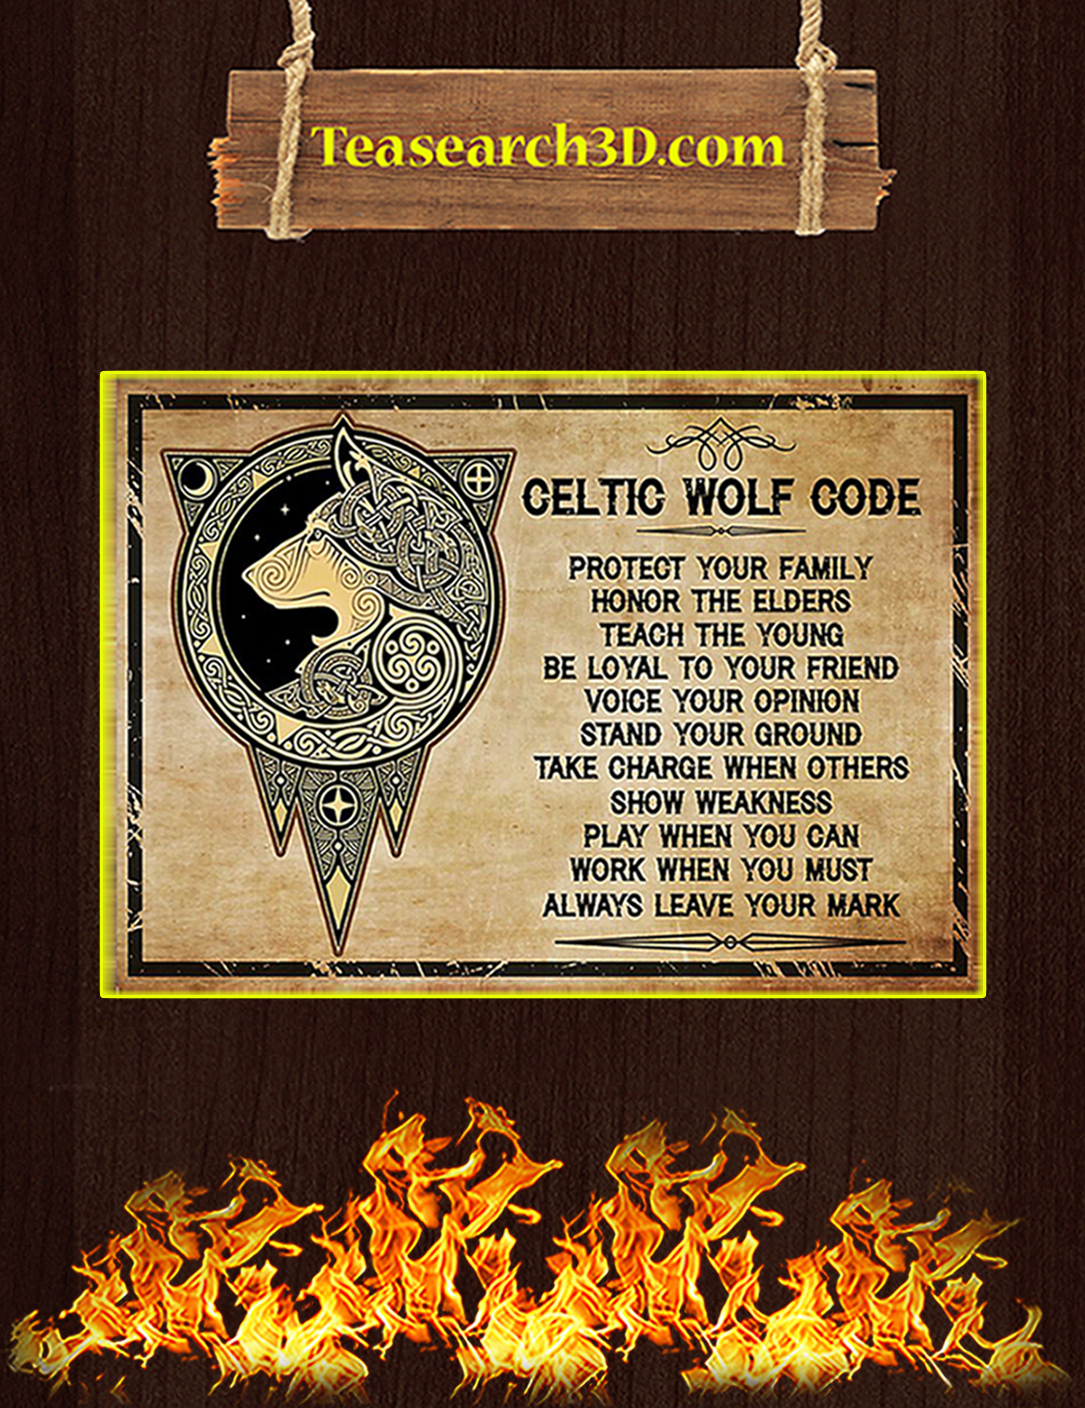 Celtic wolf code poster A2